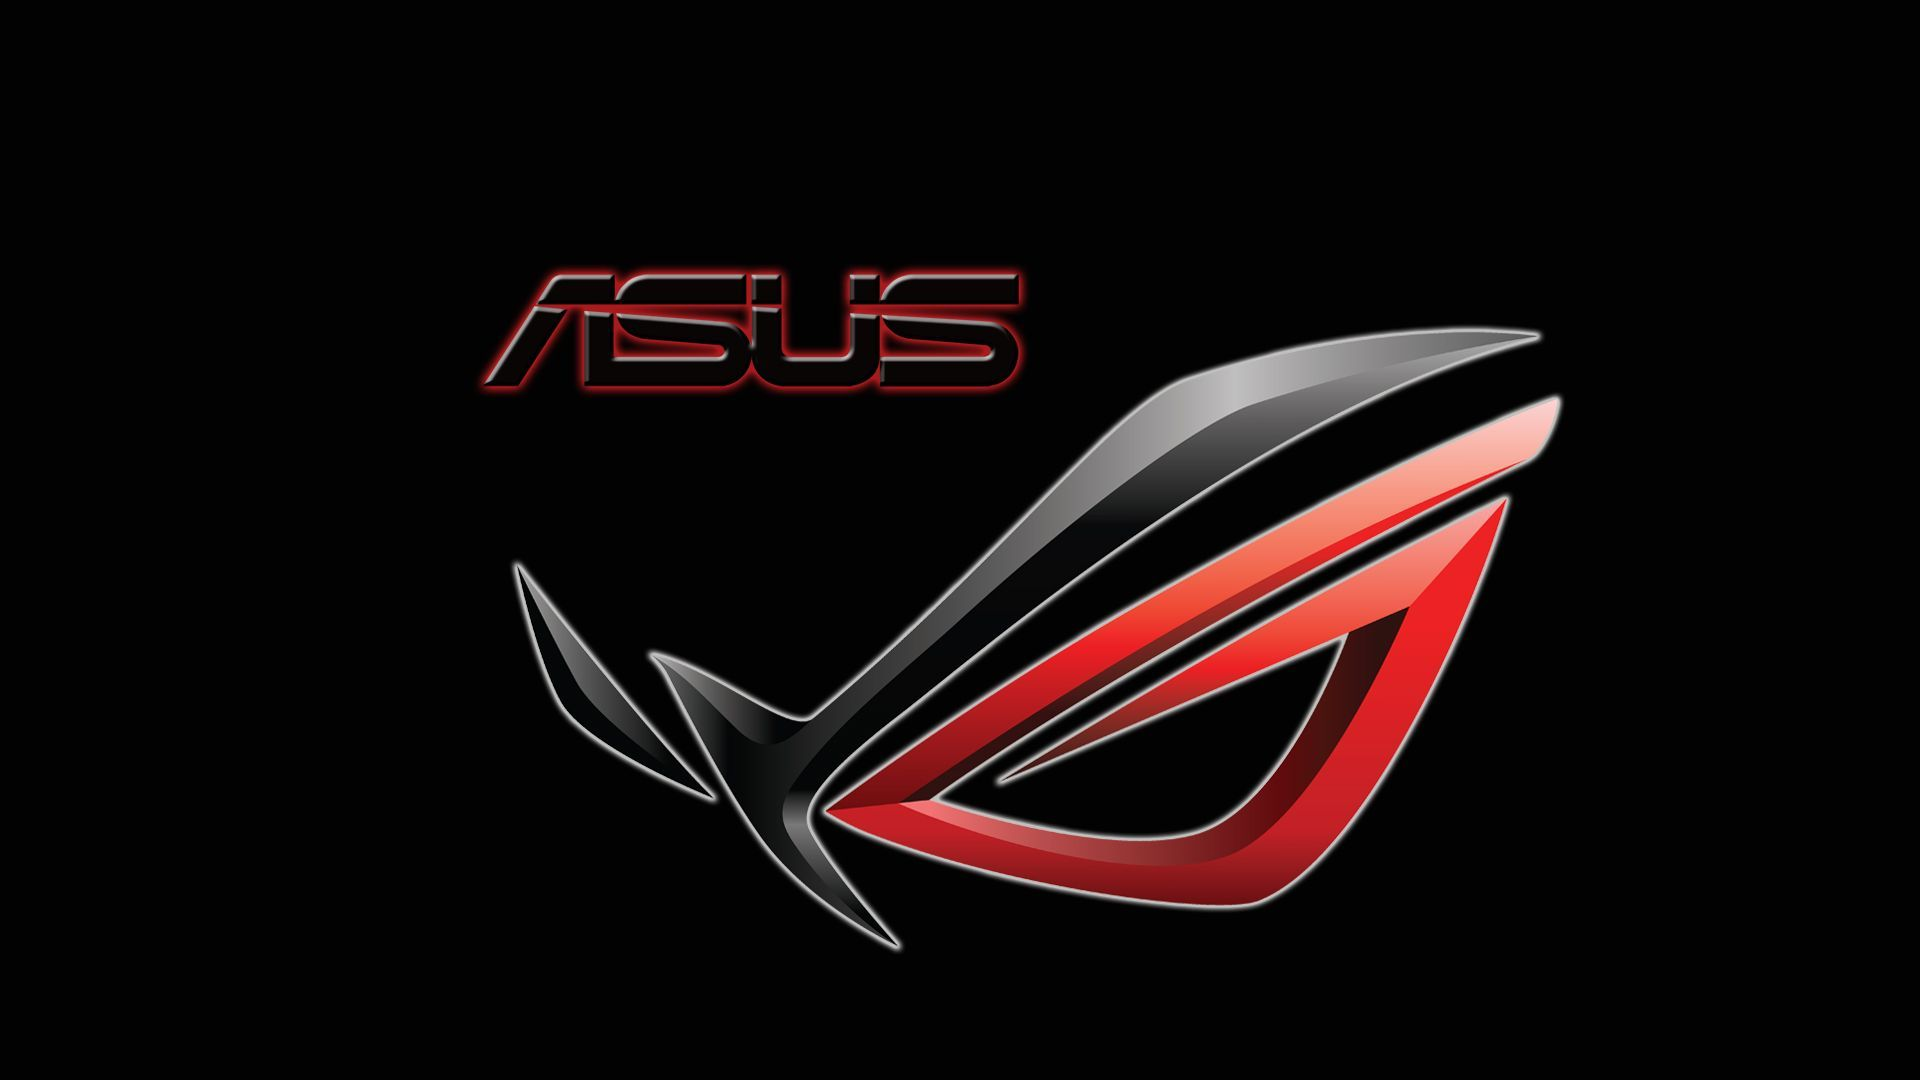 asus rog full hd background http://wallpapers-and-backgrounds